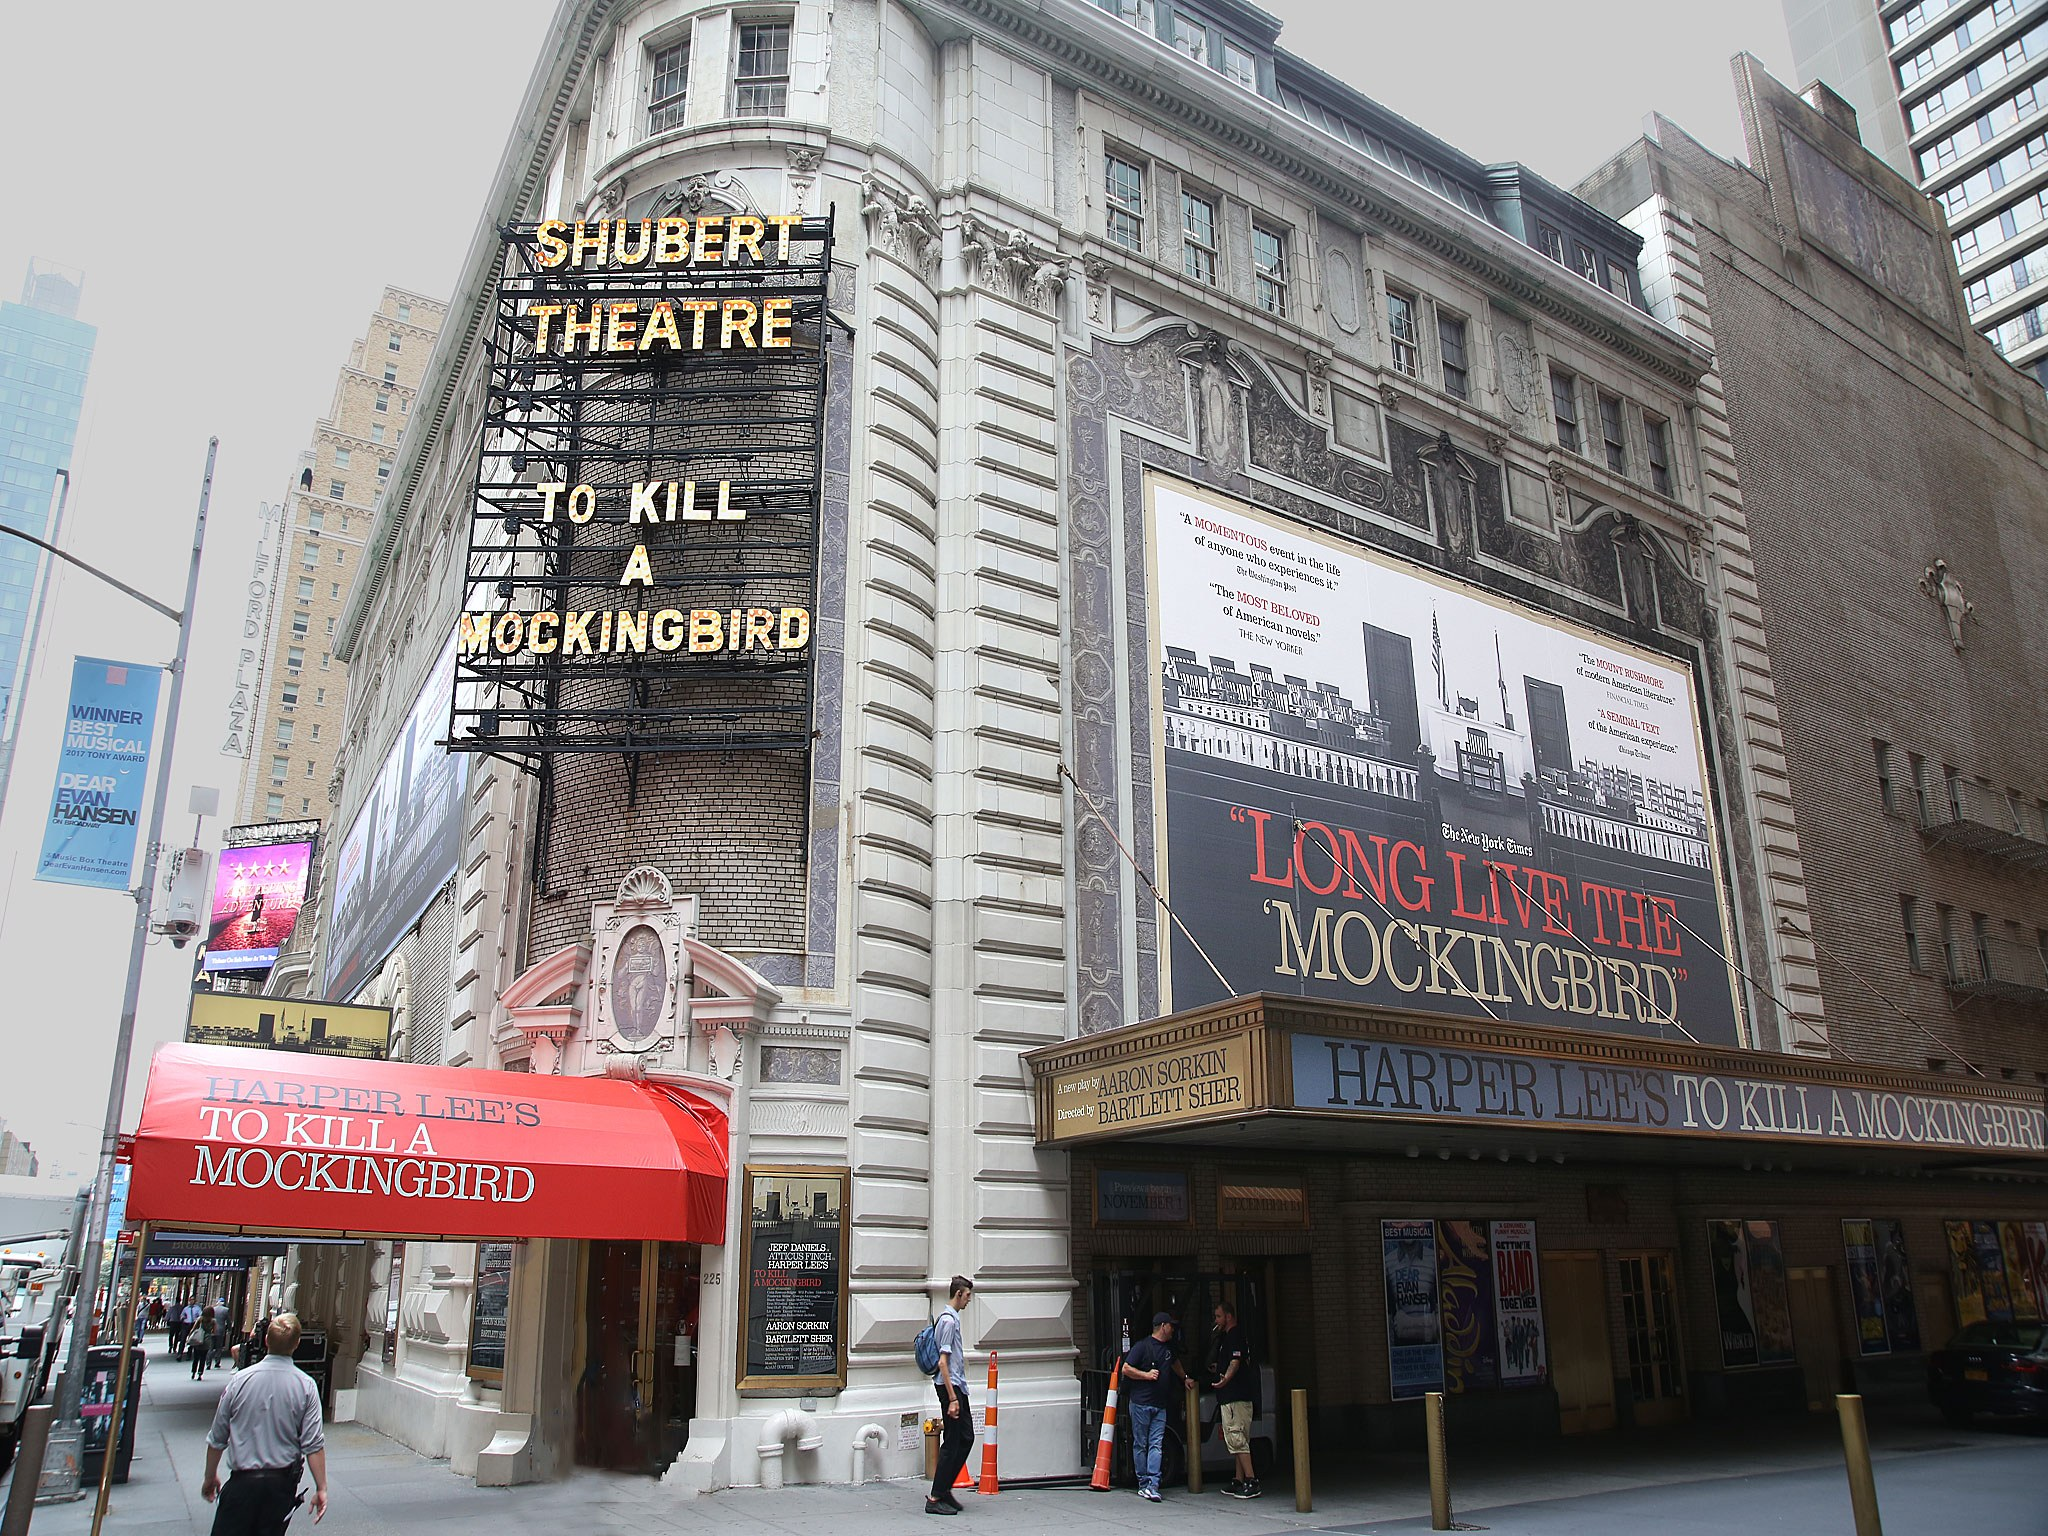 To Kill a Mockingbird at the Shubert Theatre